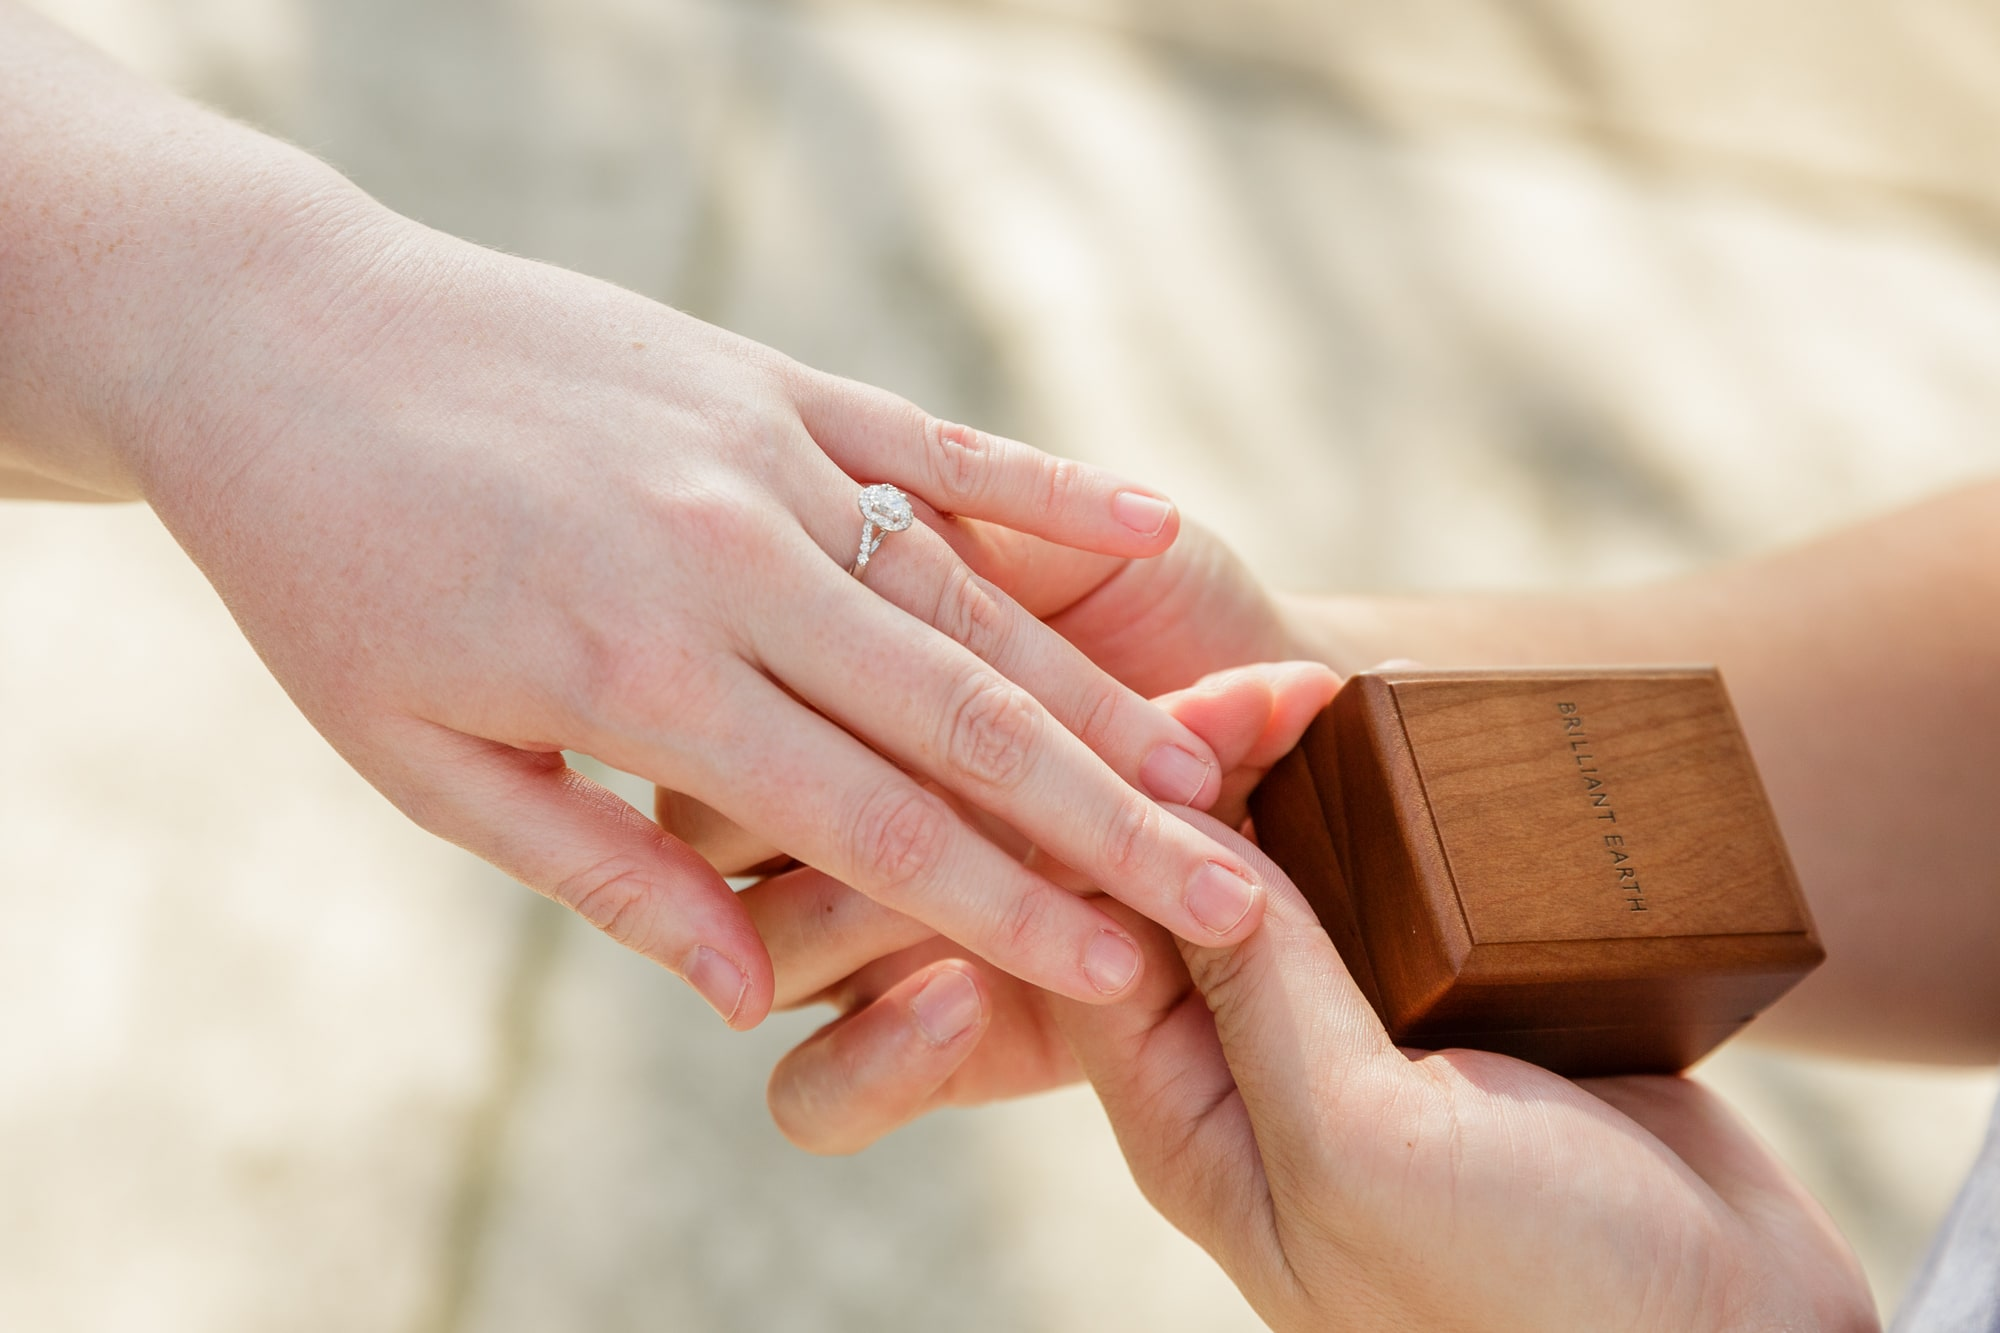 man holds fiances hand with new engagement ring on it while holding the wooden ring box it came in as well